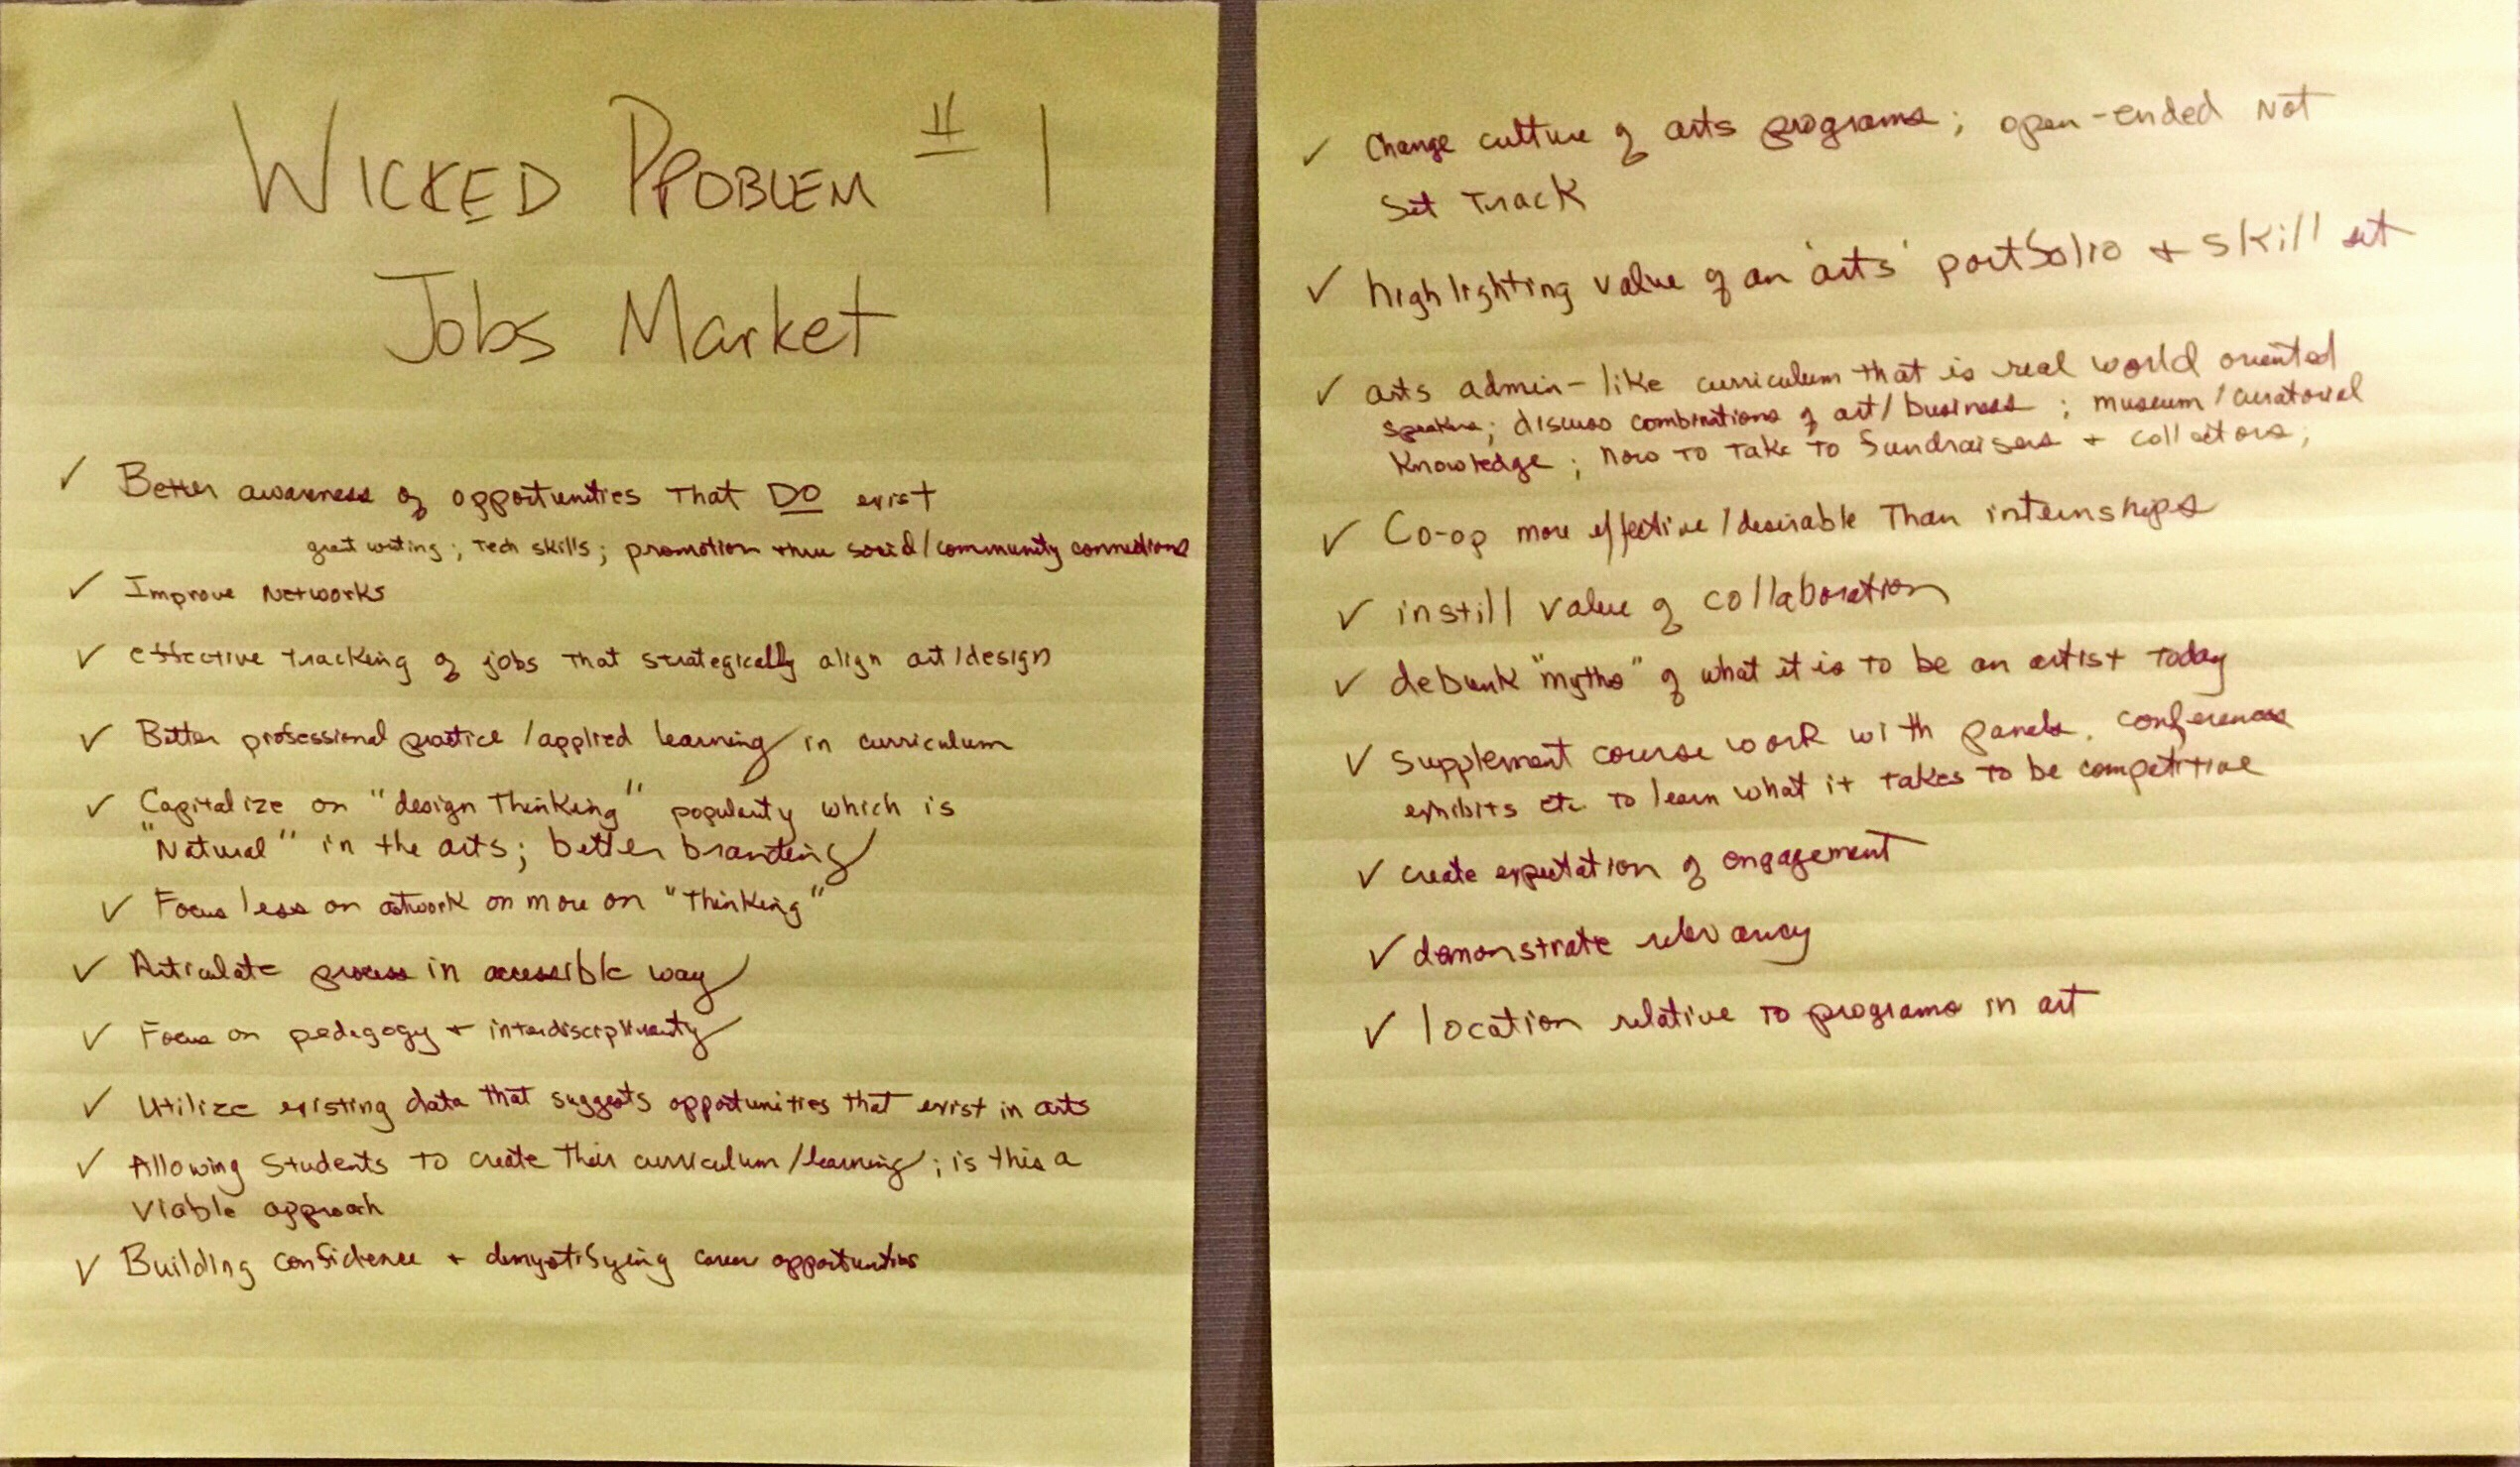 Wicked Problem 1 Notes